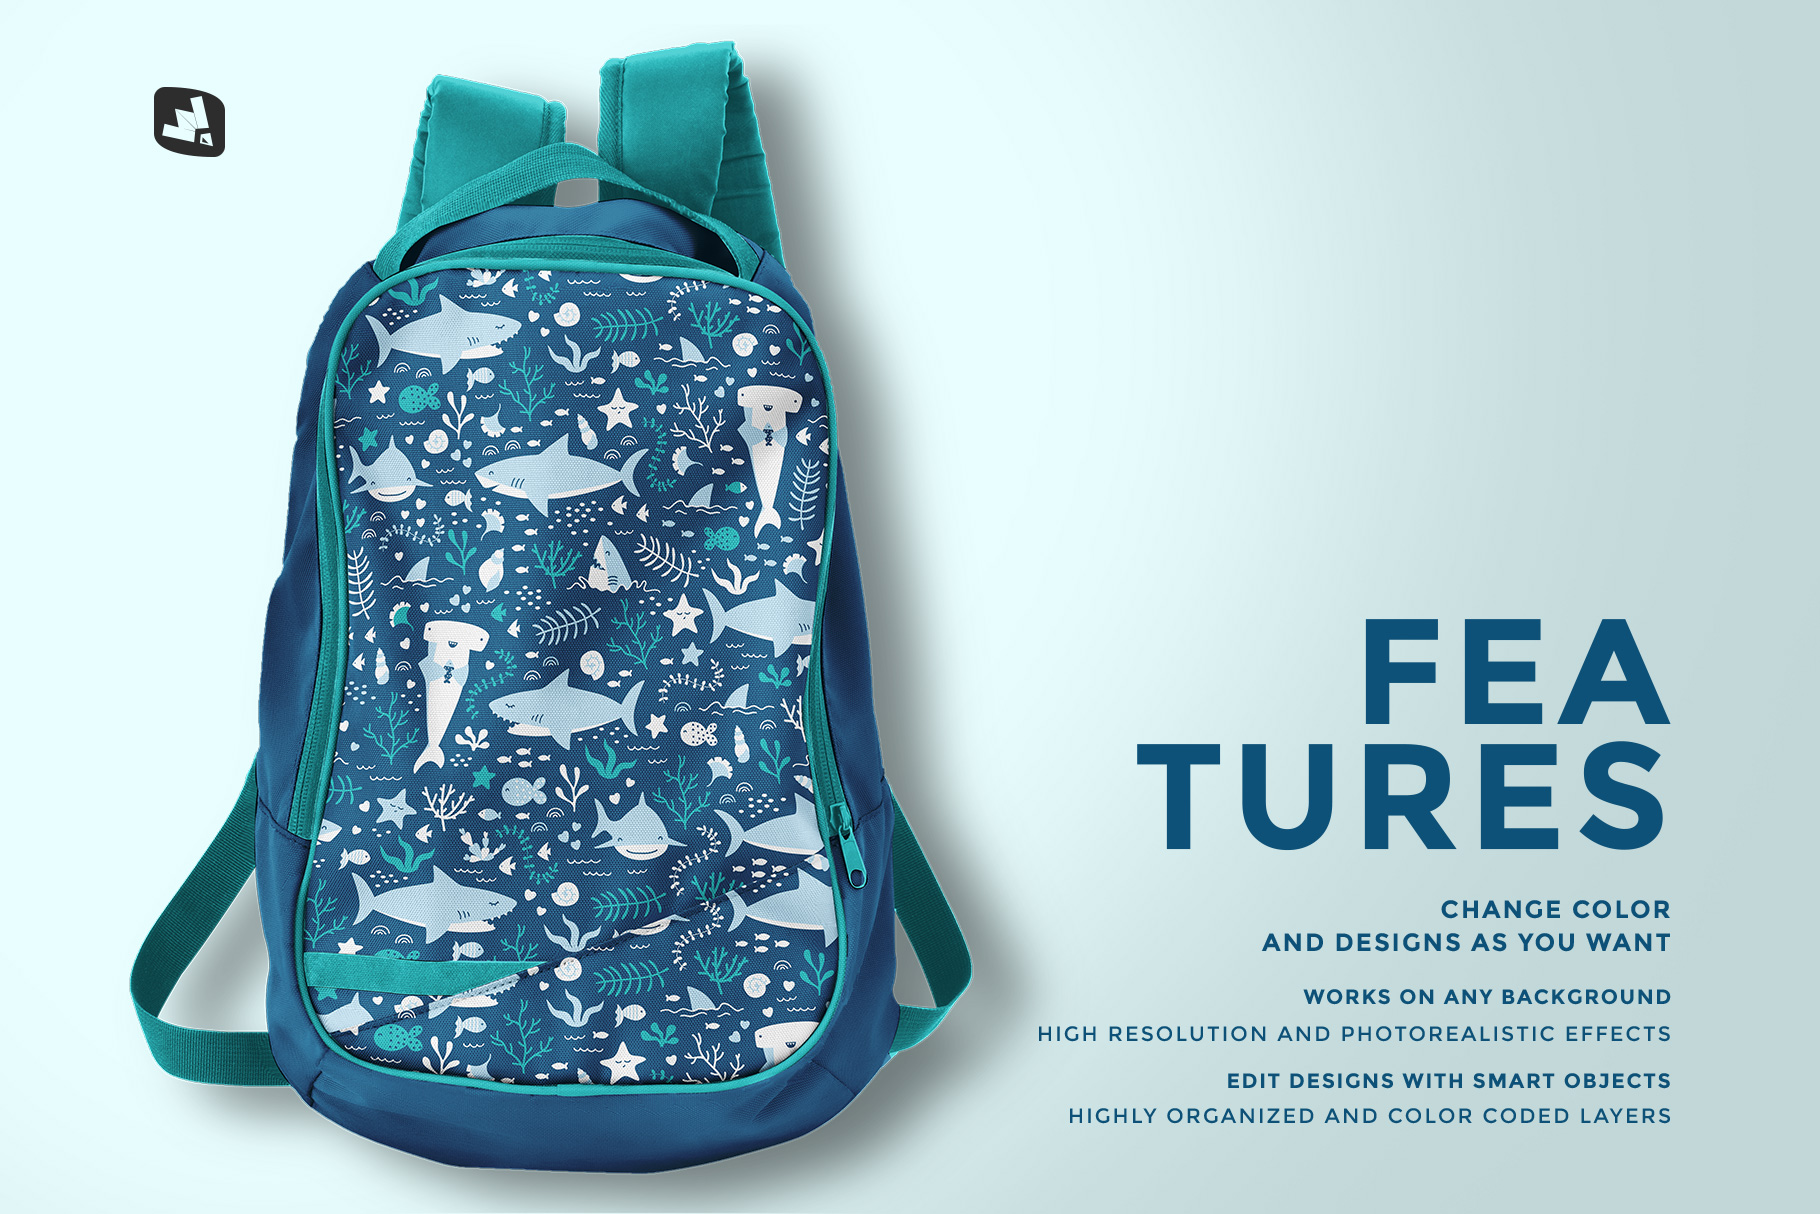 features of the top view backpack mockup